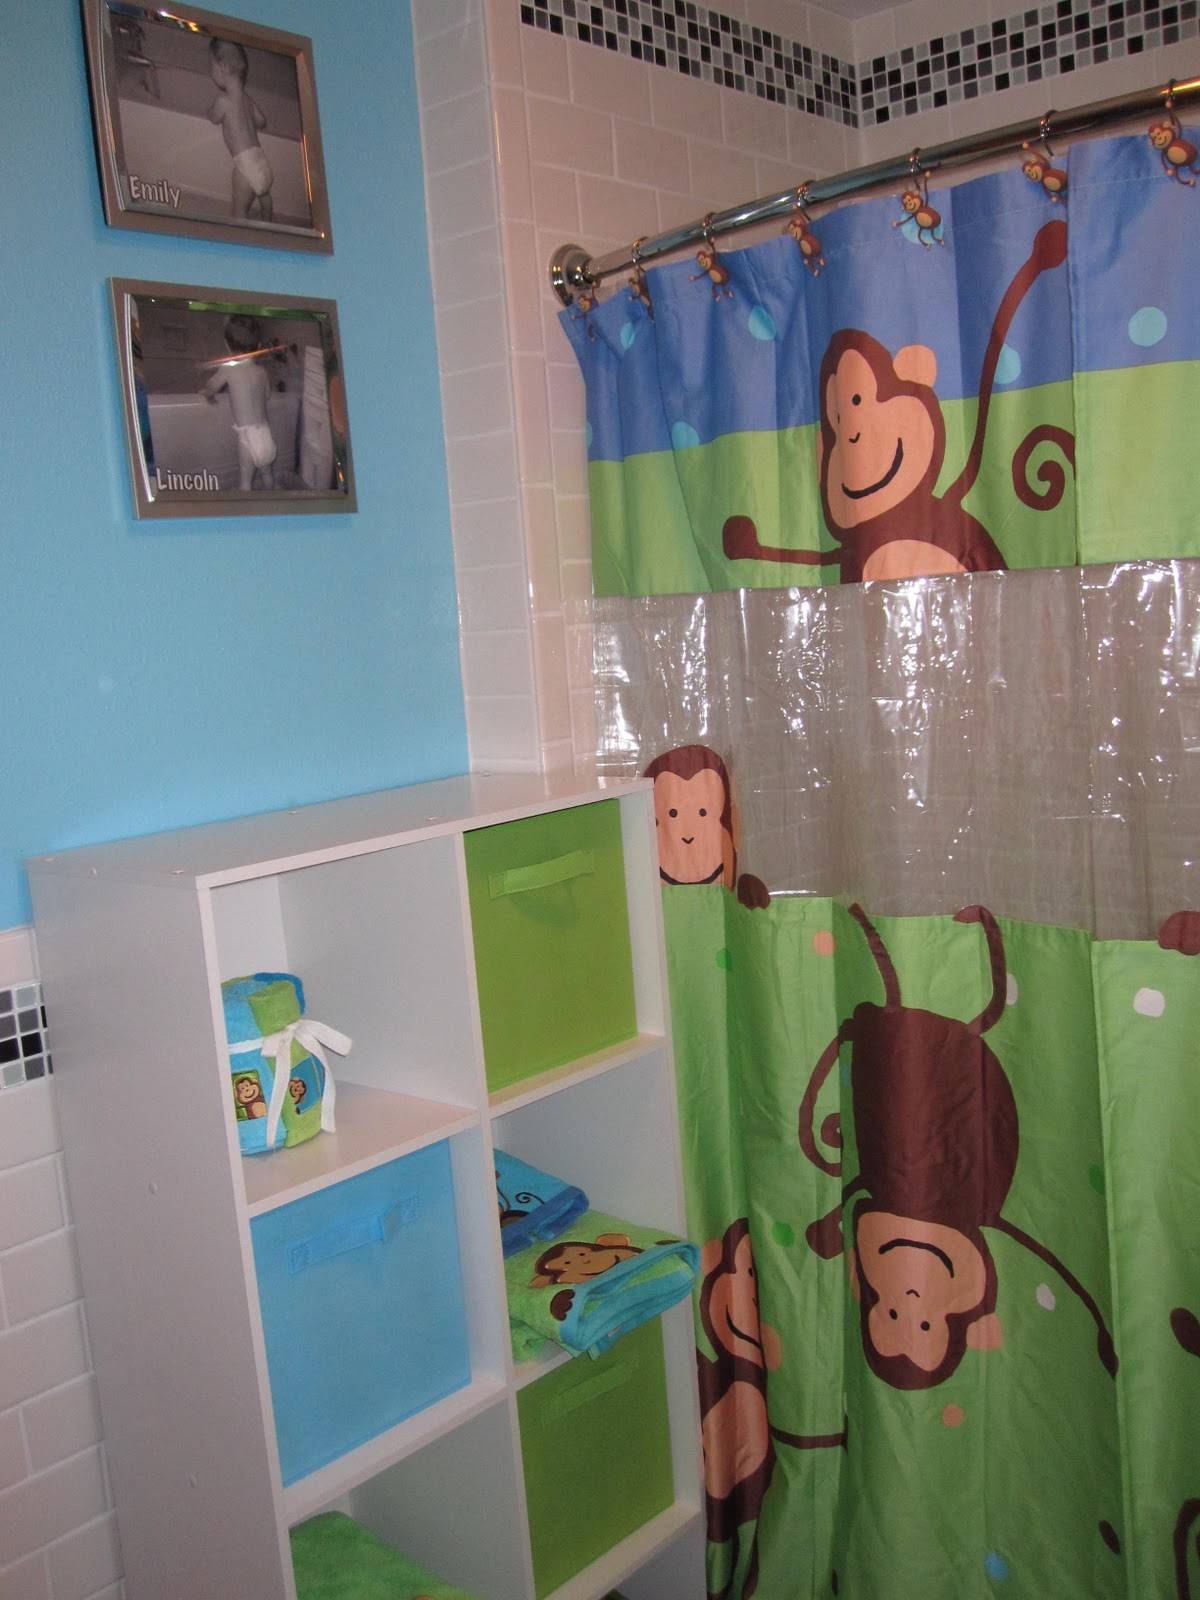 Circo bathroom sets - Accessories Are The Fun Things That Really Bring It All Together As Mentioned Above All The Monkey Decor Is Part Of The Circo Collection From Target